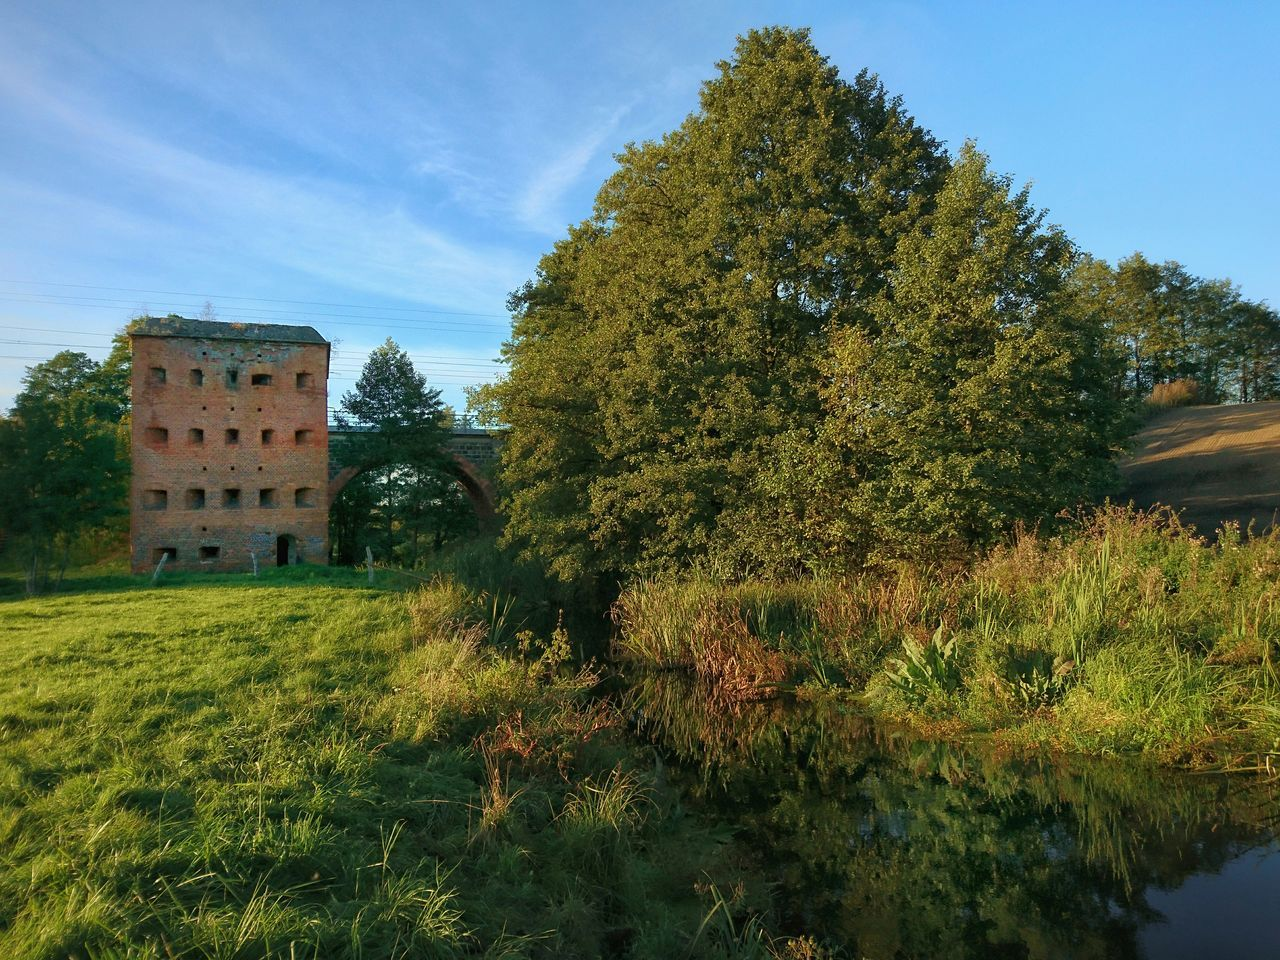 Architecture Built Structure Green Color Tree Outdoors Building Exterior Nature No People Sky Day Bunker Abandoned Abandoned Buildings Abandoned Places Polska Poland Warmia Bunkier Tomaryny Architecturelovers Naturephotography River Rzeka Pasleka